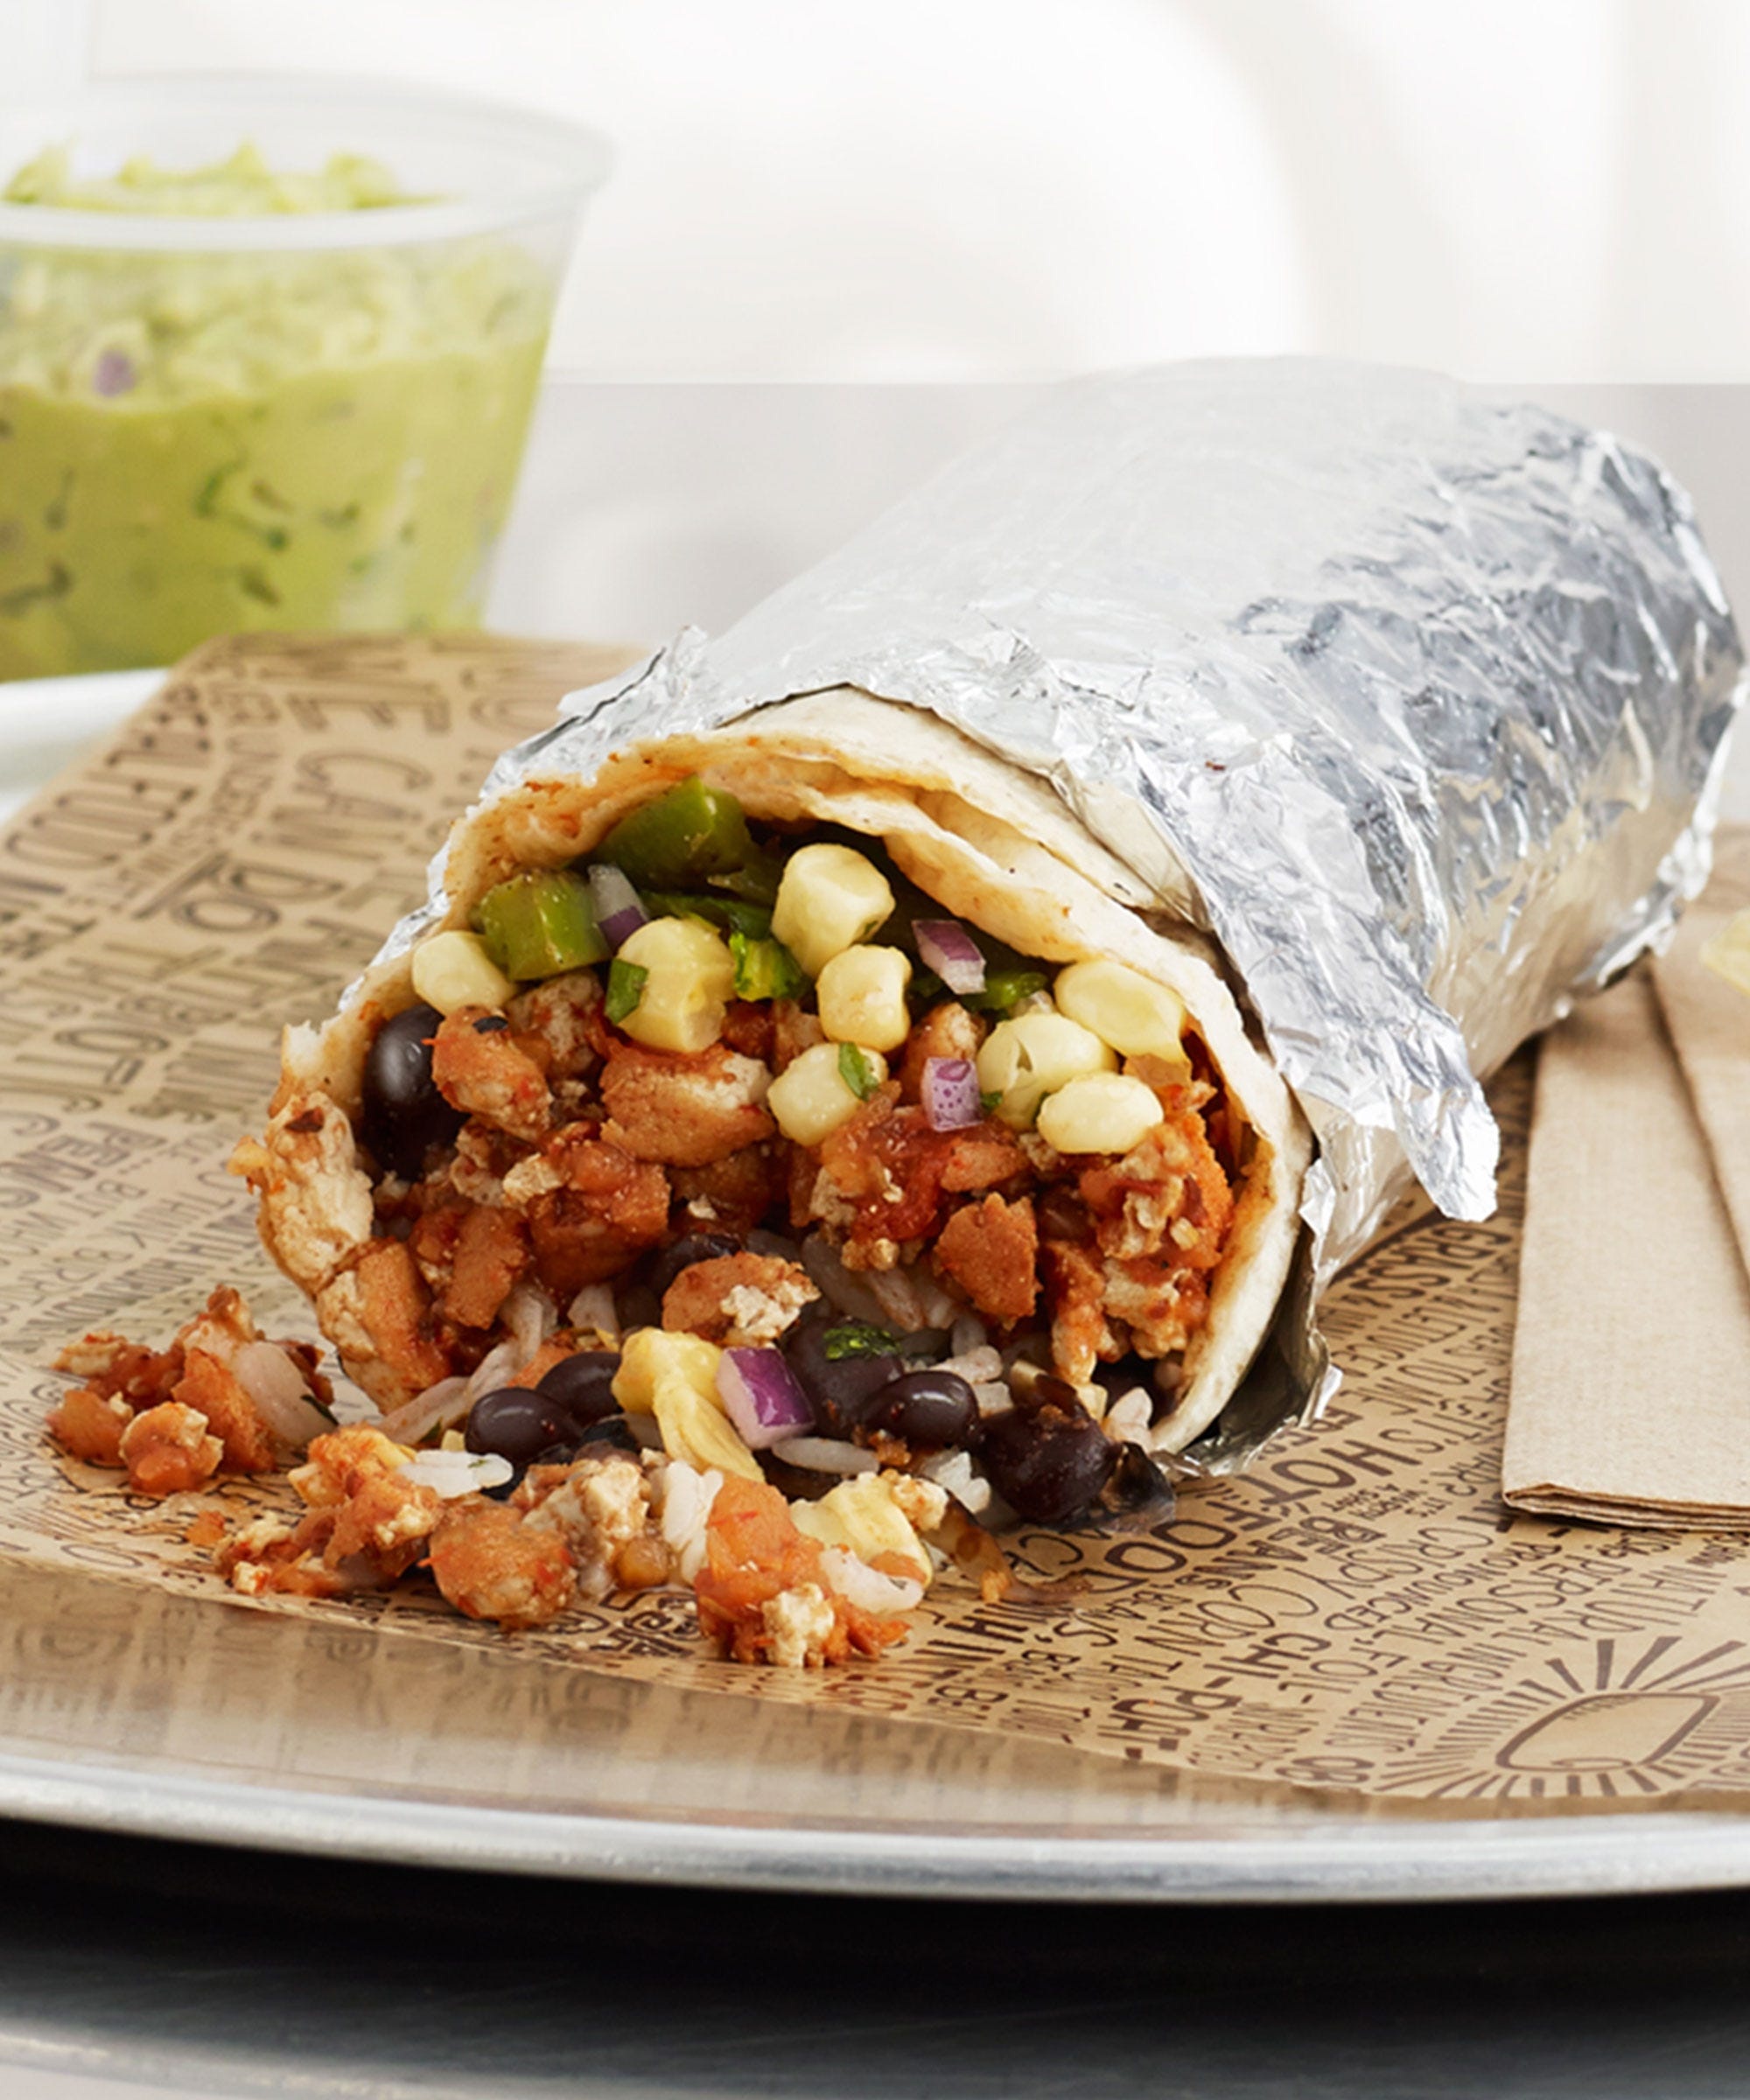 Nurses Can Get Free Burritos At Chipotle, But Just For One Day